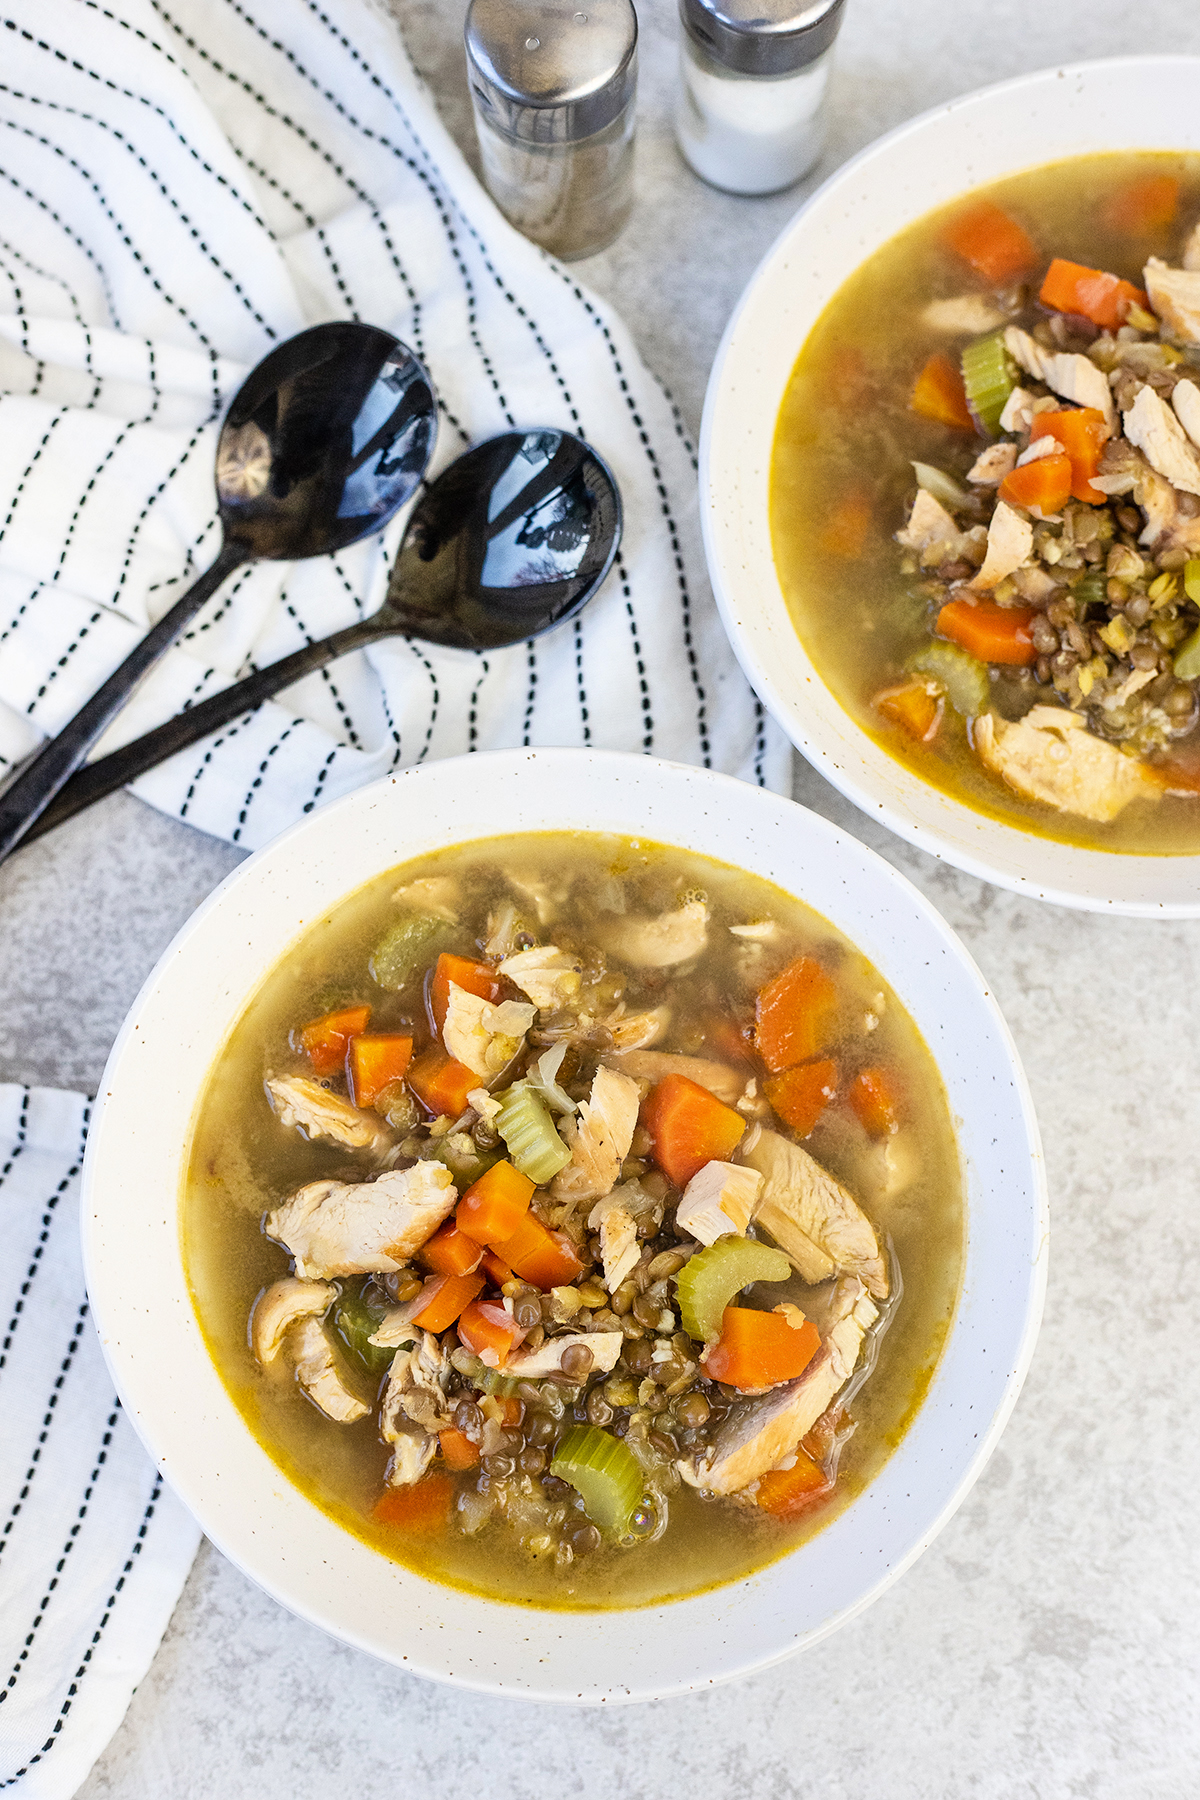 Chicken lentil soup is loaded with chicken, lentils, carrots, and celery.